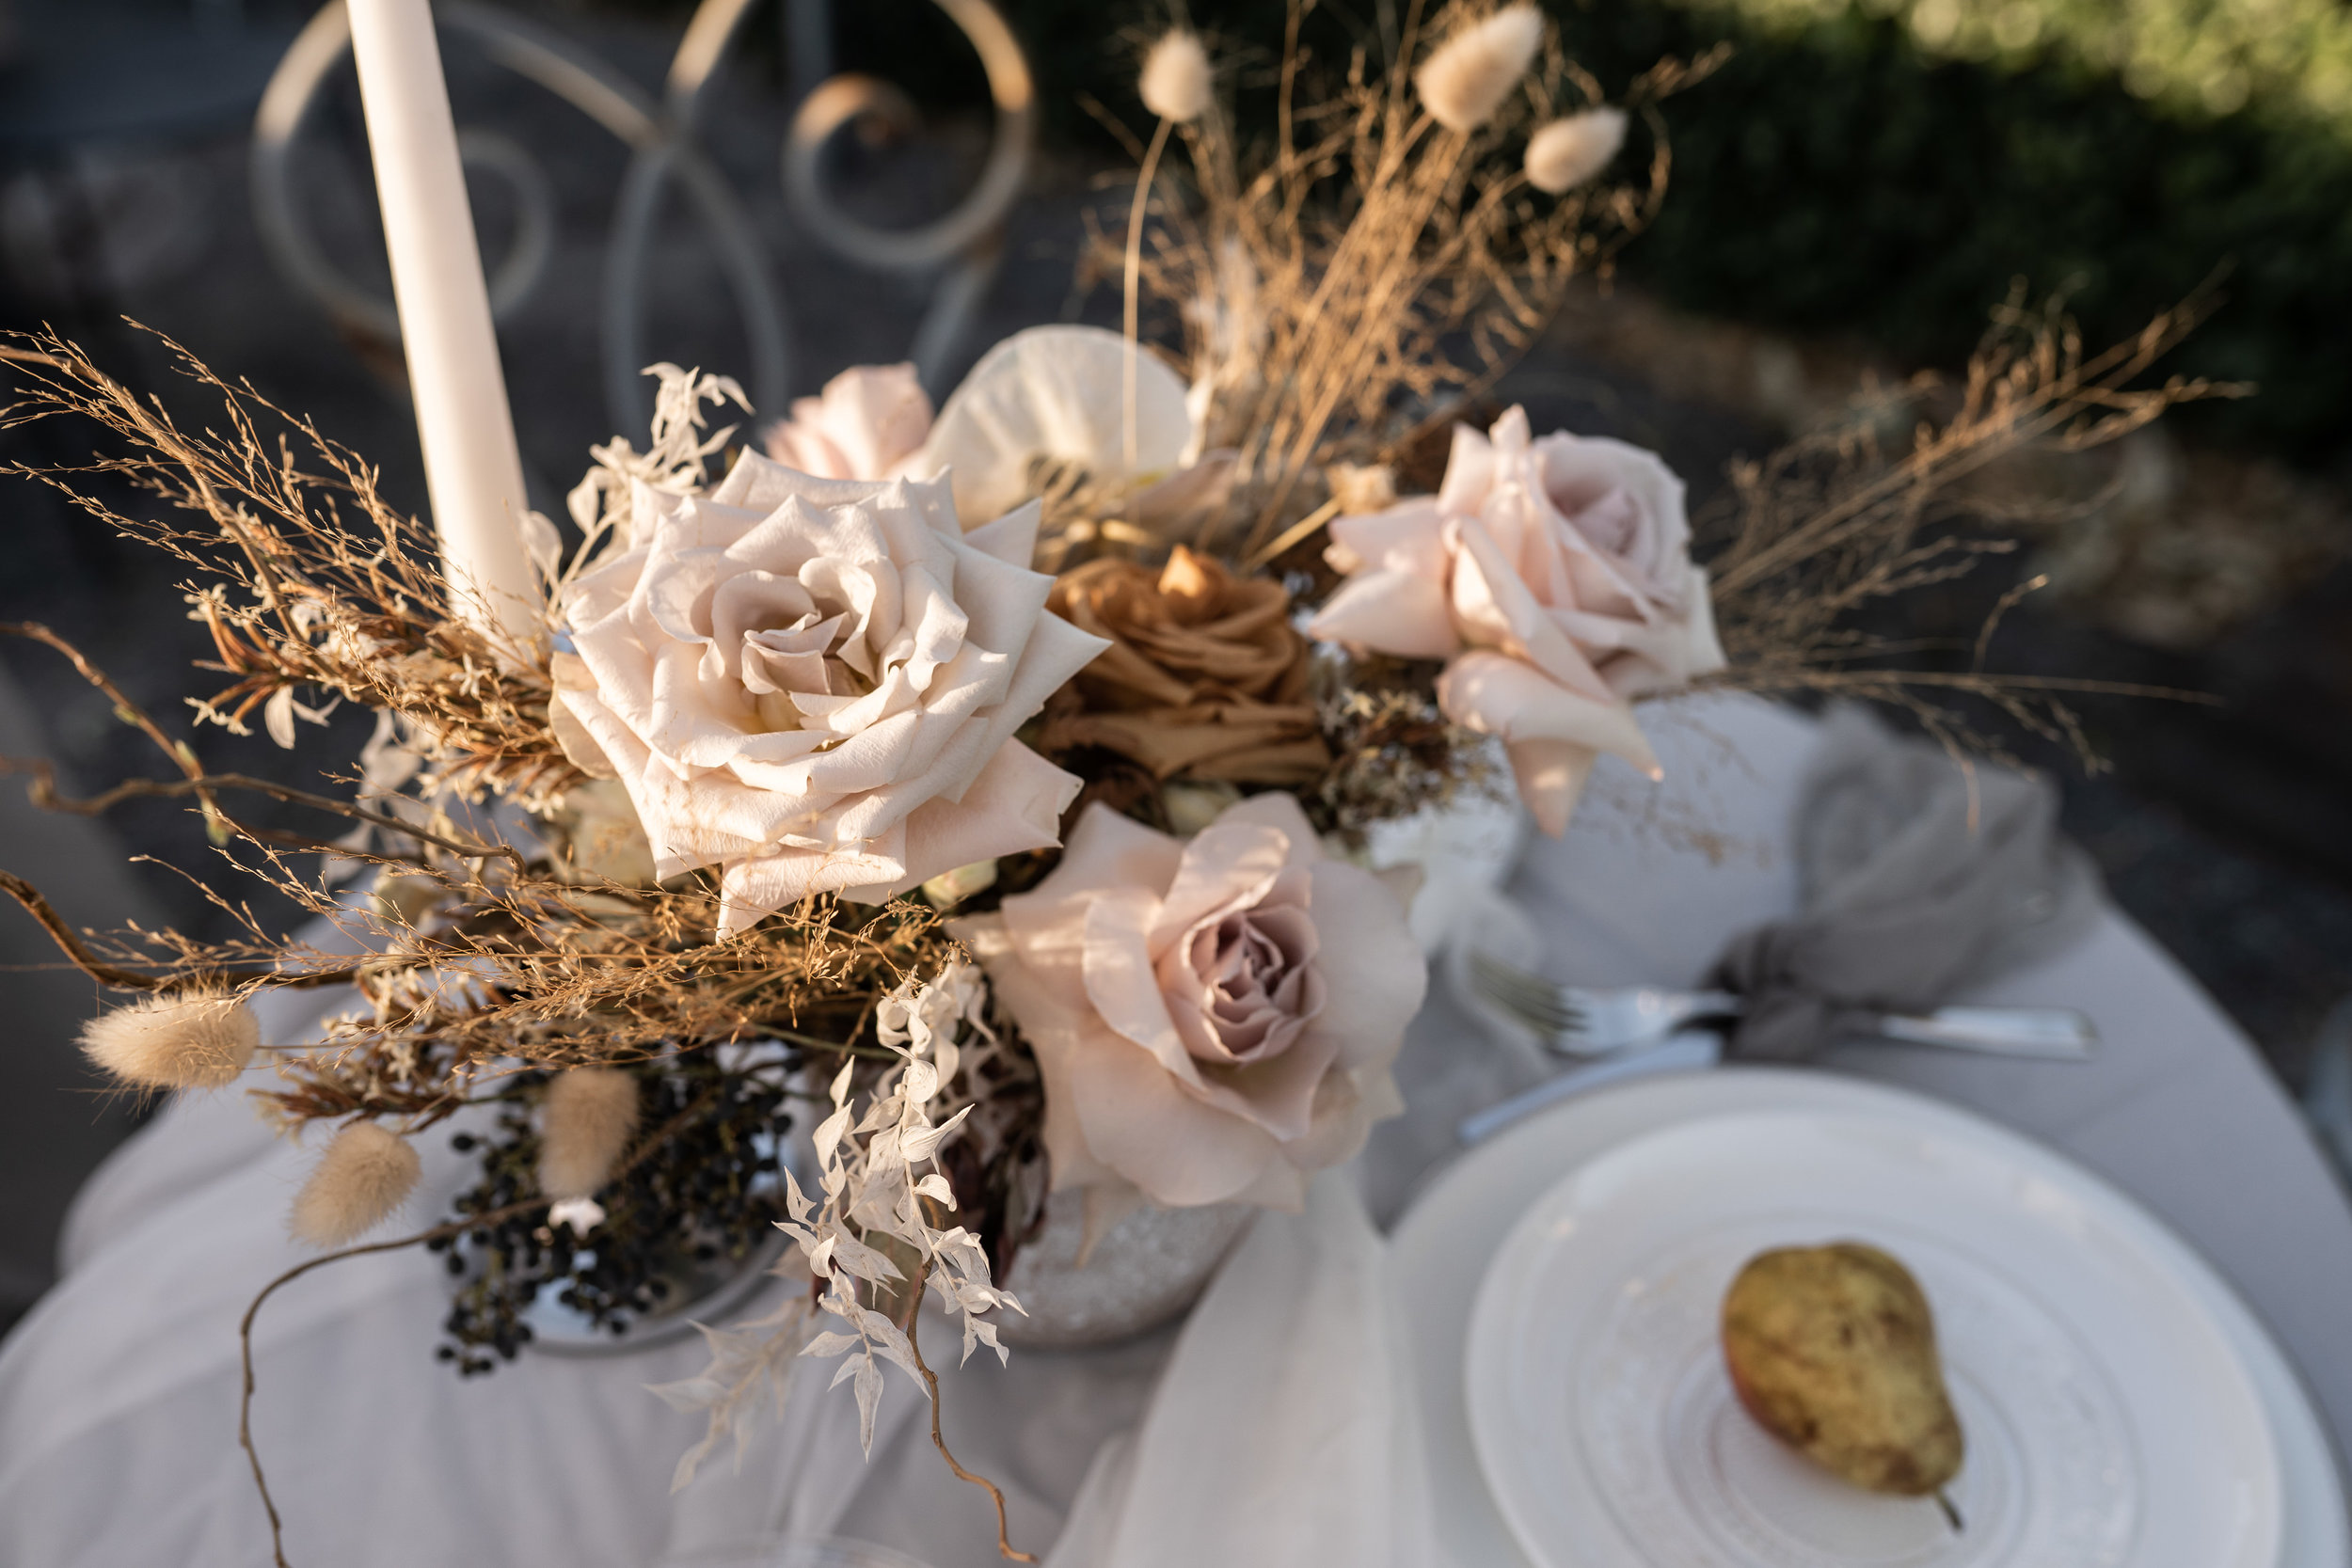 Dried Blush Flower Arrangement Table Setting Styled Shoot